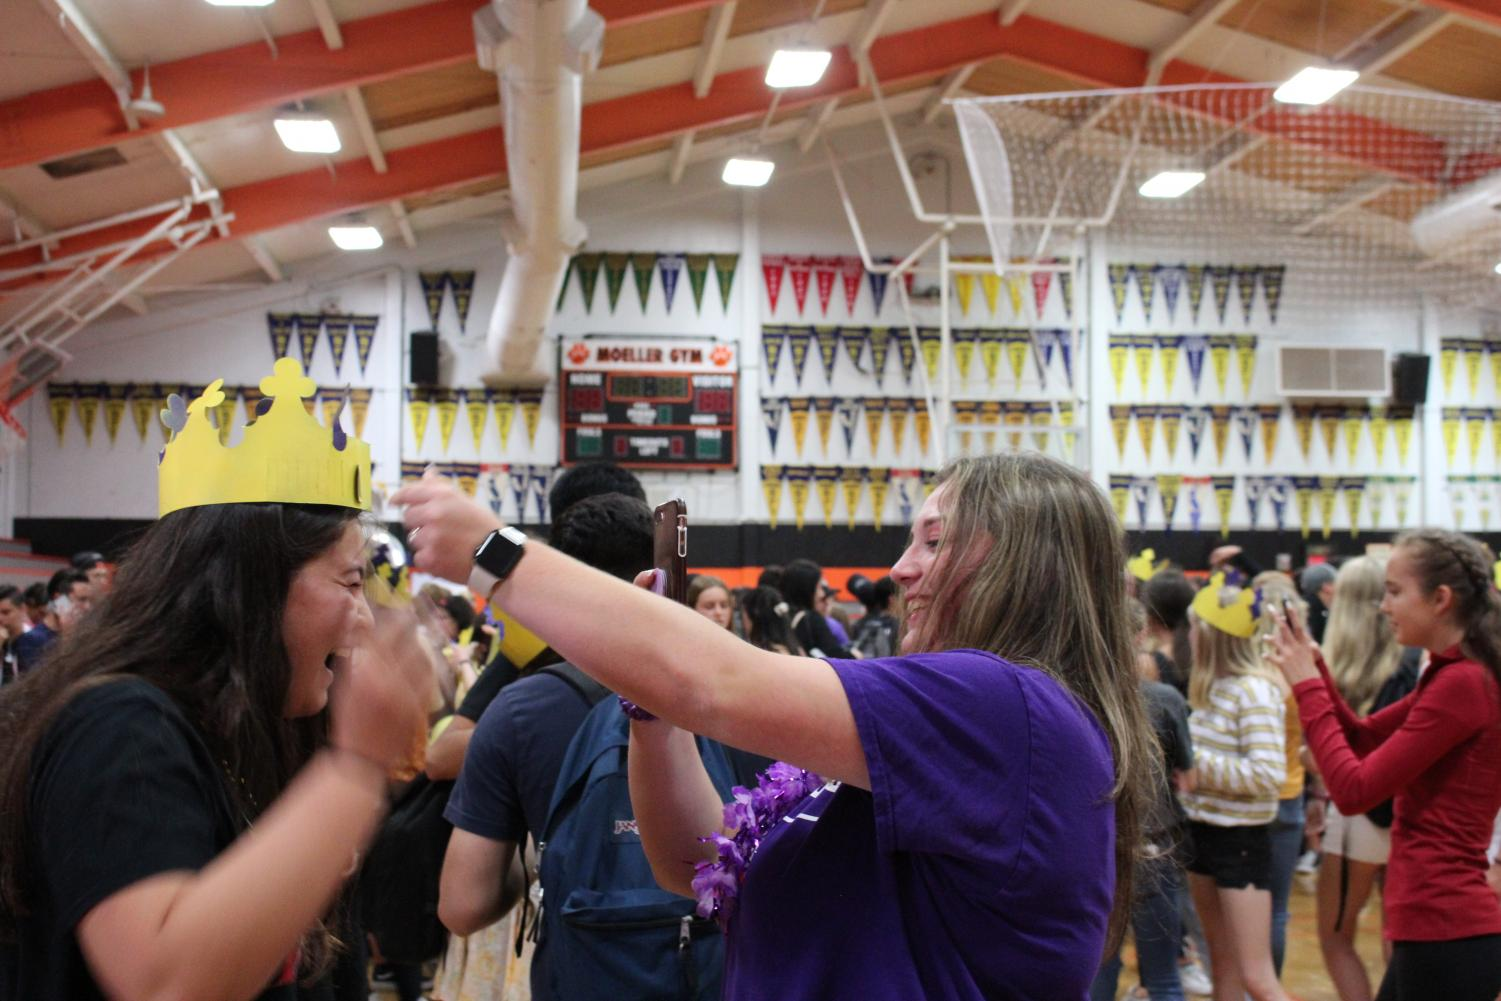 GALLERY: Students celebrate last rally of the 2018-19 school year